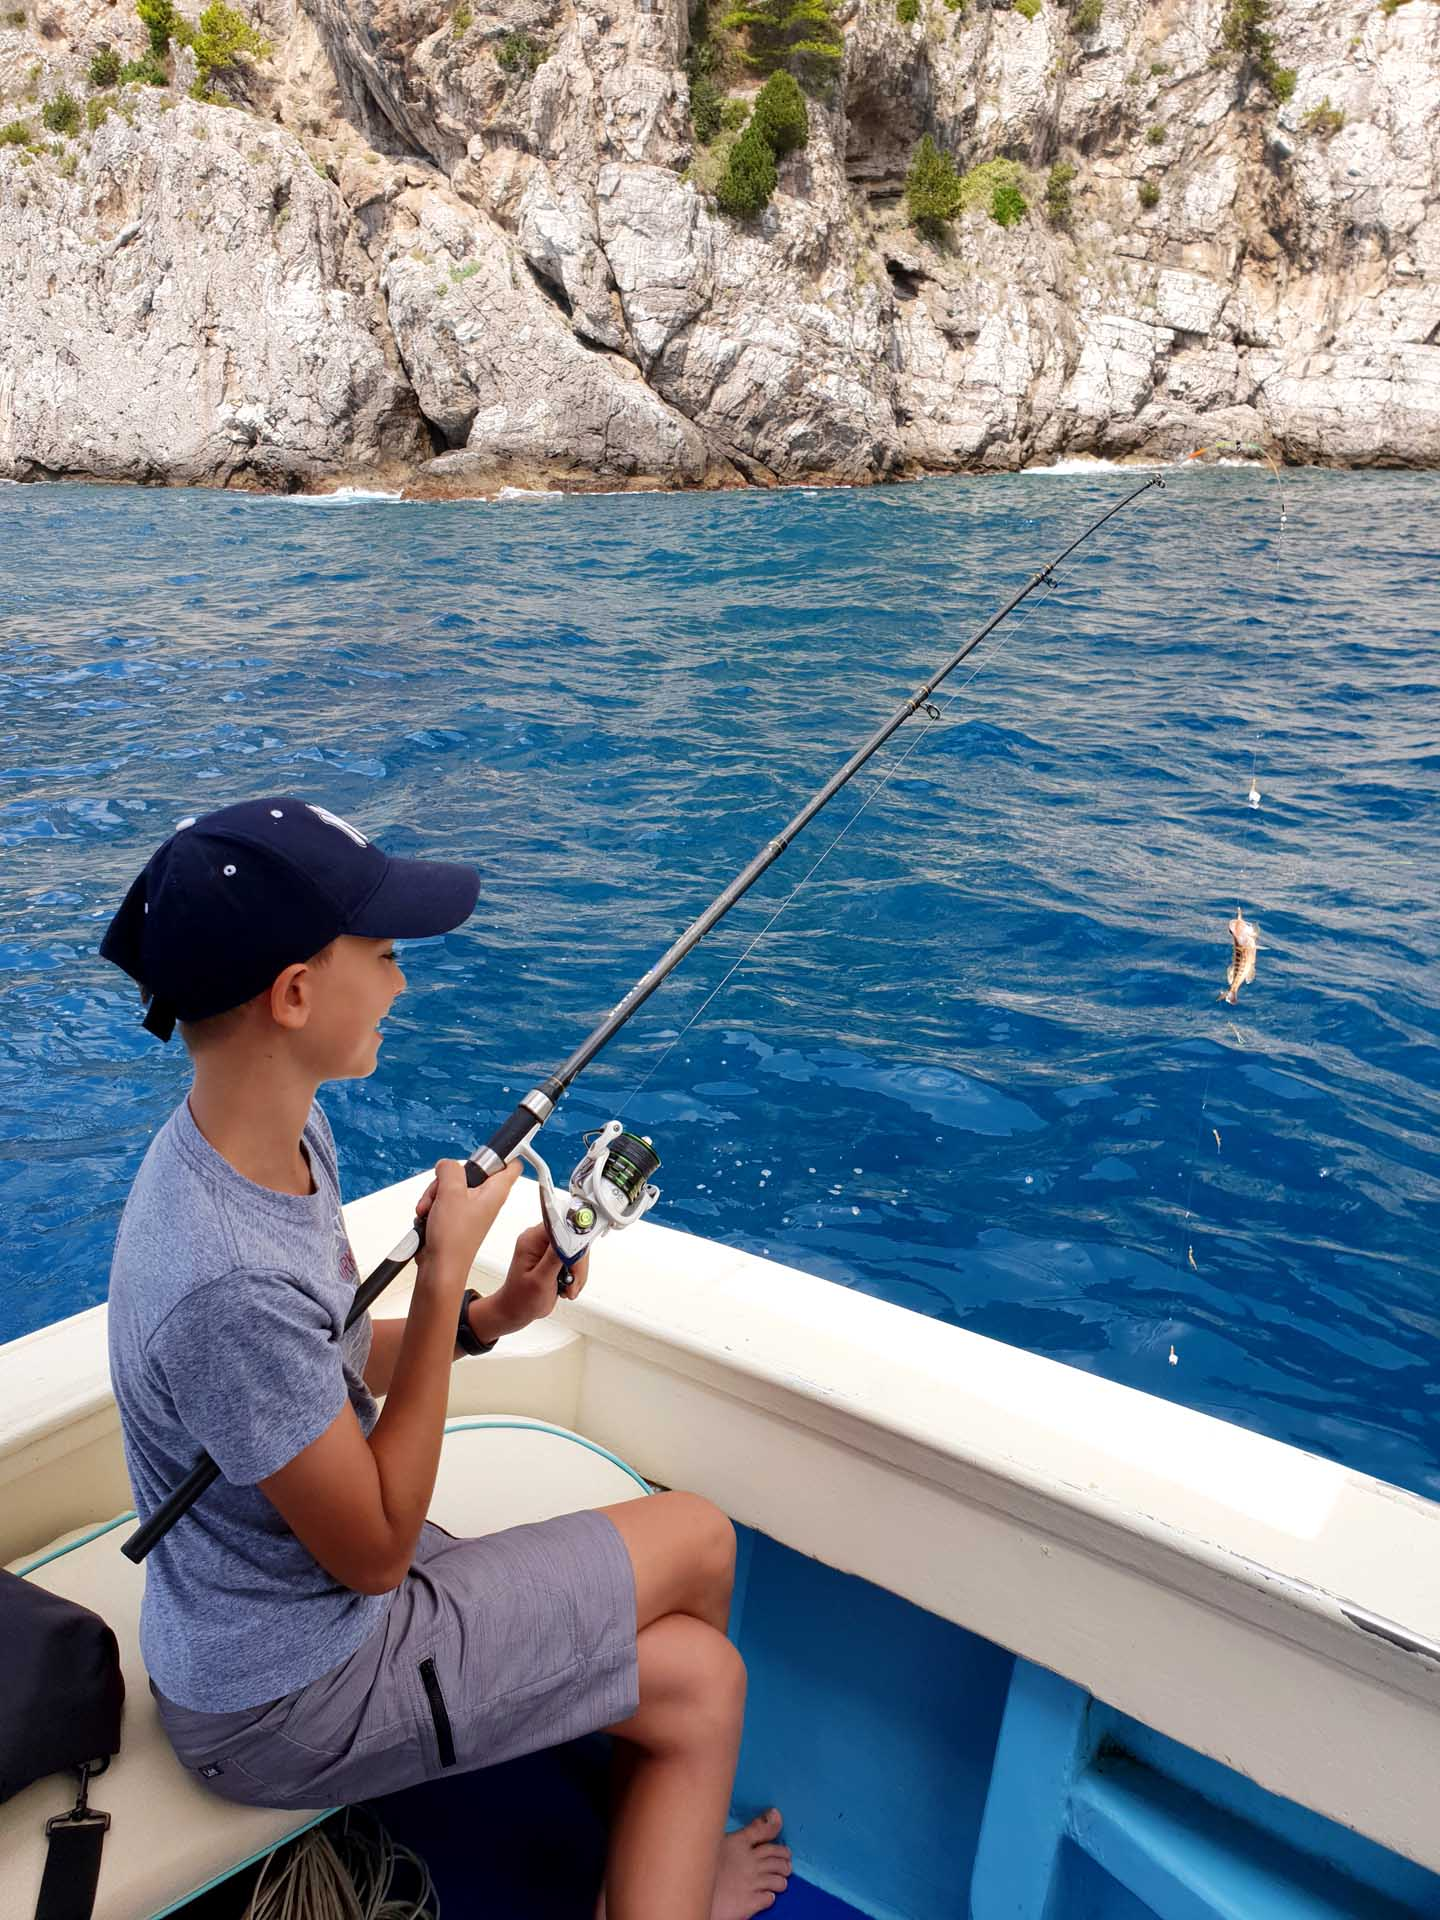 Fishing experience trip for perfect for child